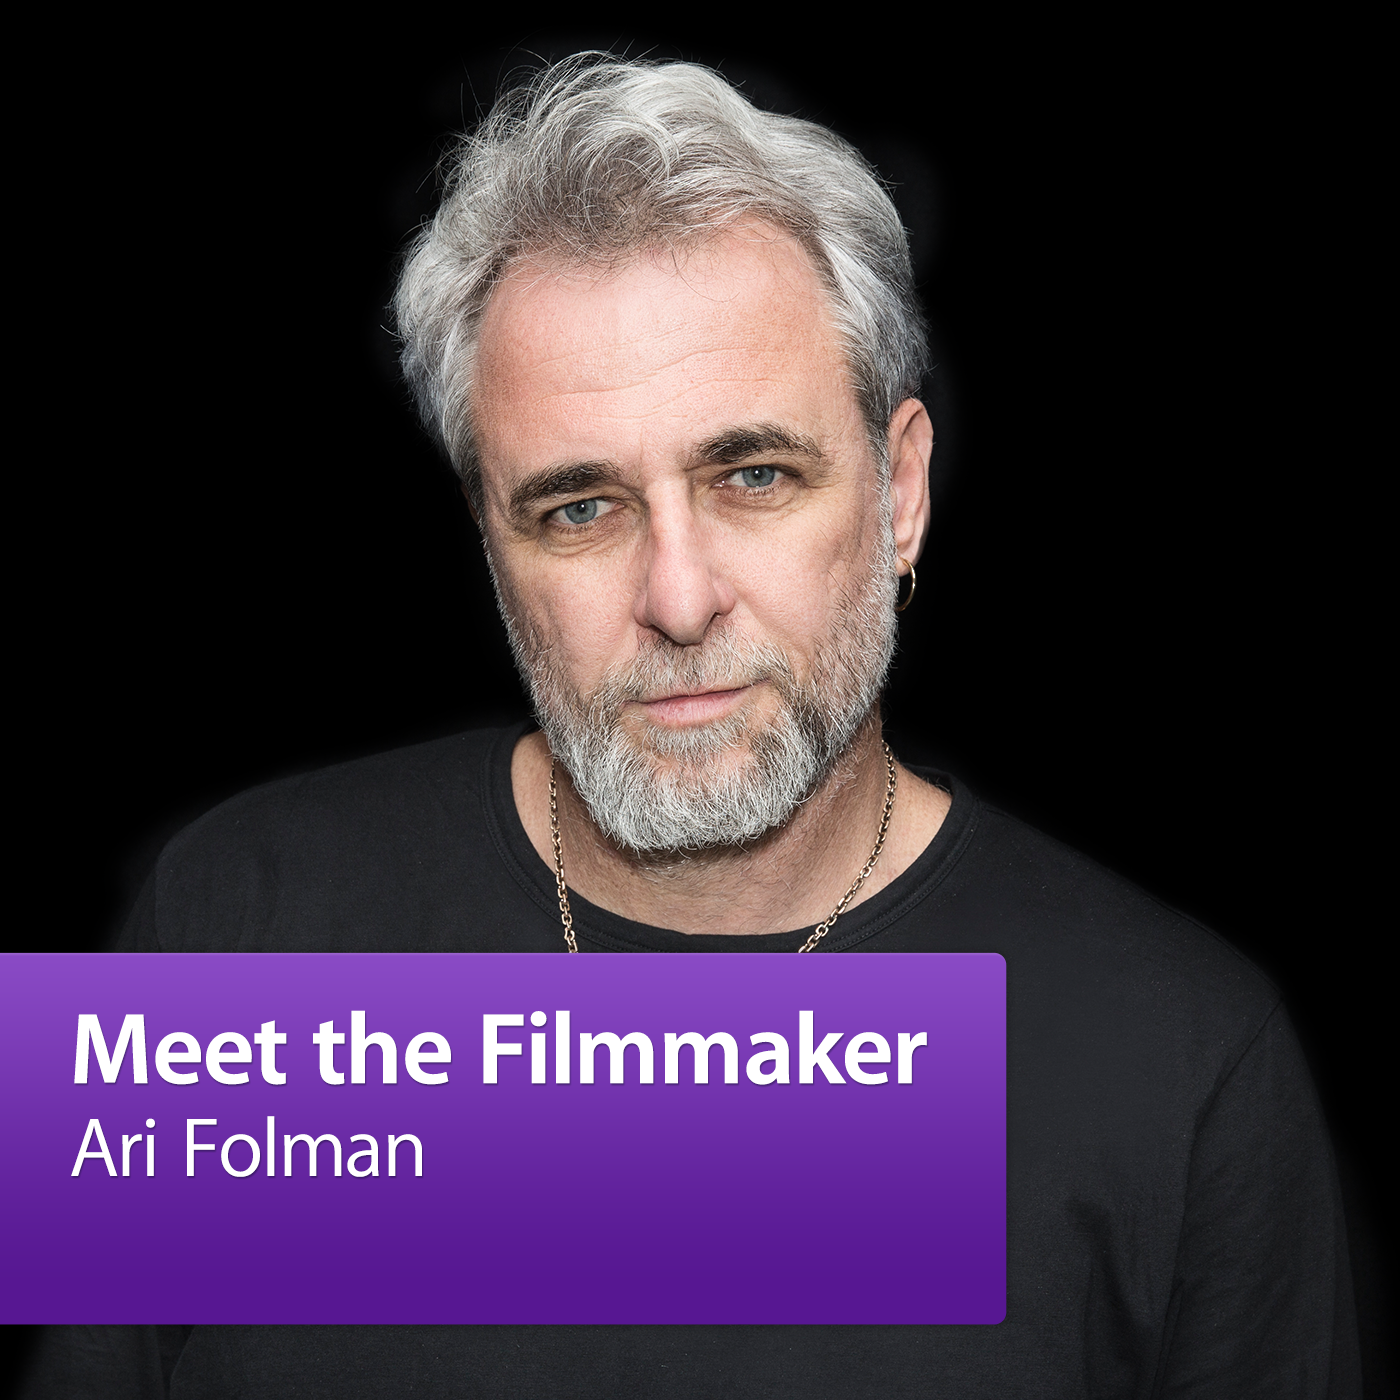 Ari Folman: Meet the Filmmaker